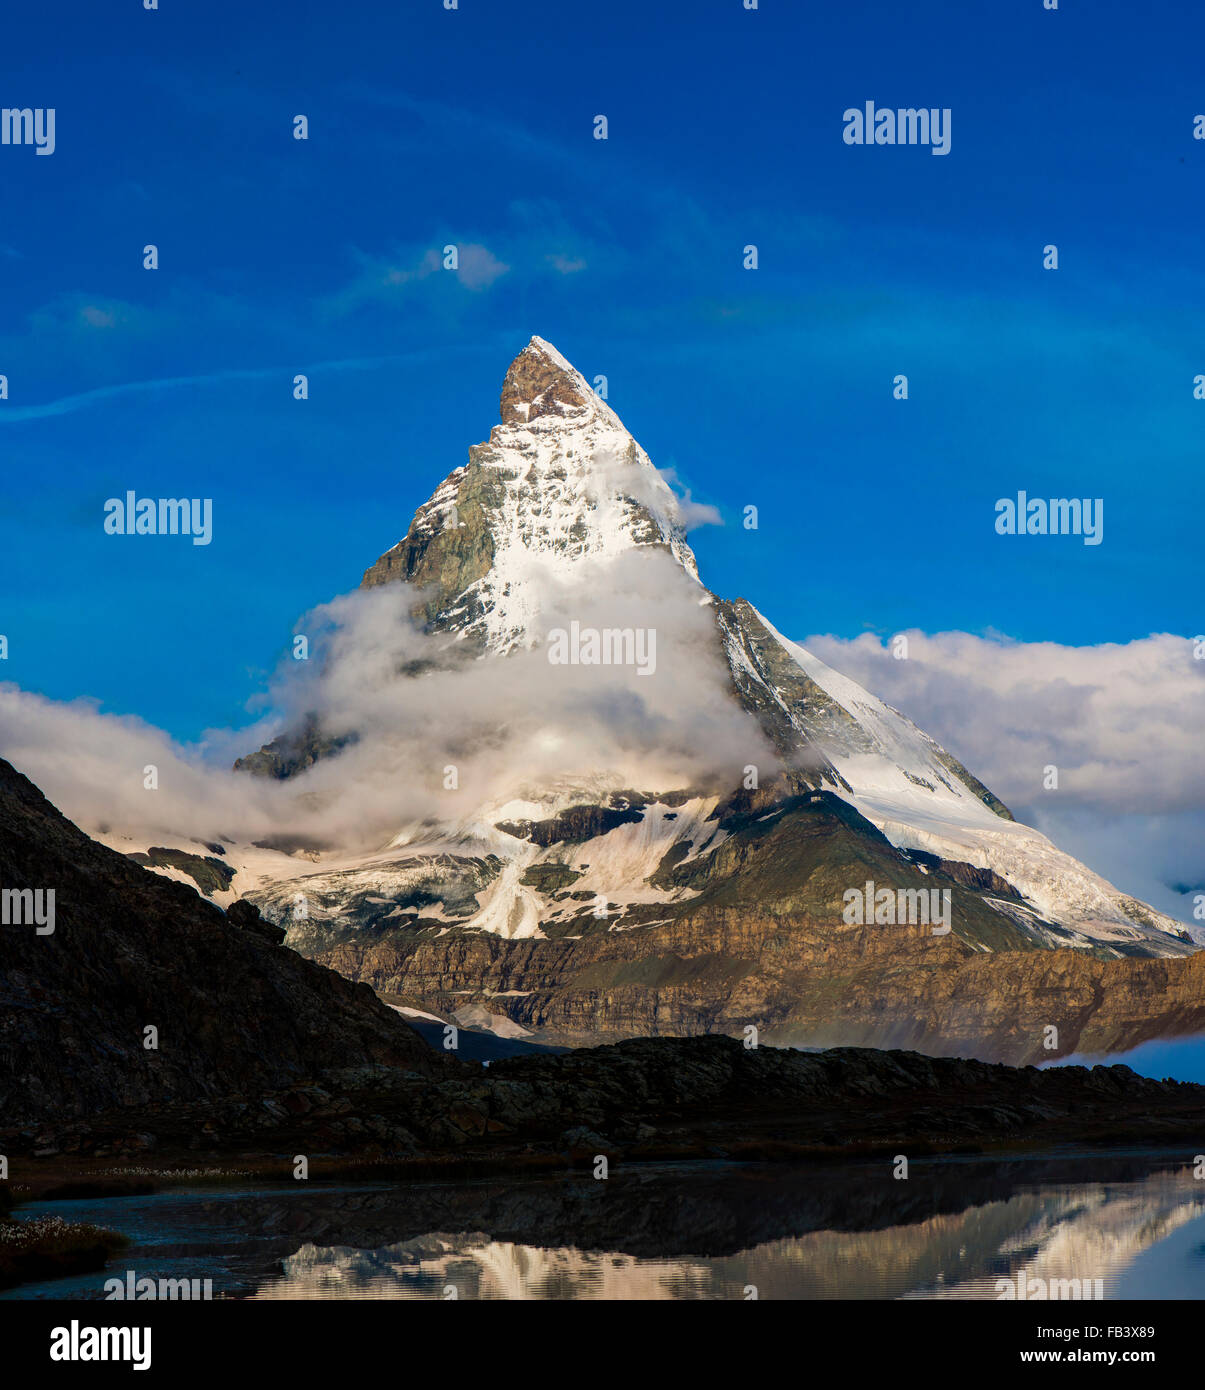 Mountain Matterhorn, Monte Cervino, Mont Cervin, 4.478 m, Rotenboden, Pennine Alps, Zermatt, Valais, Switzerland Stock Photo